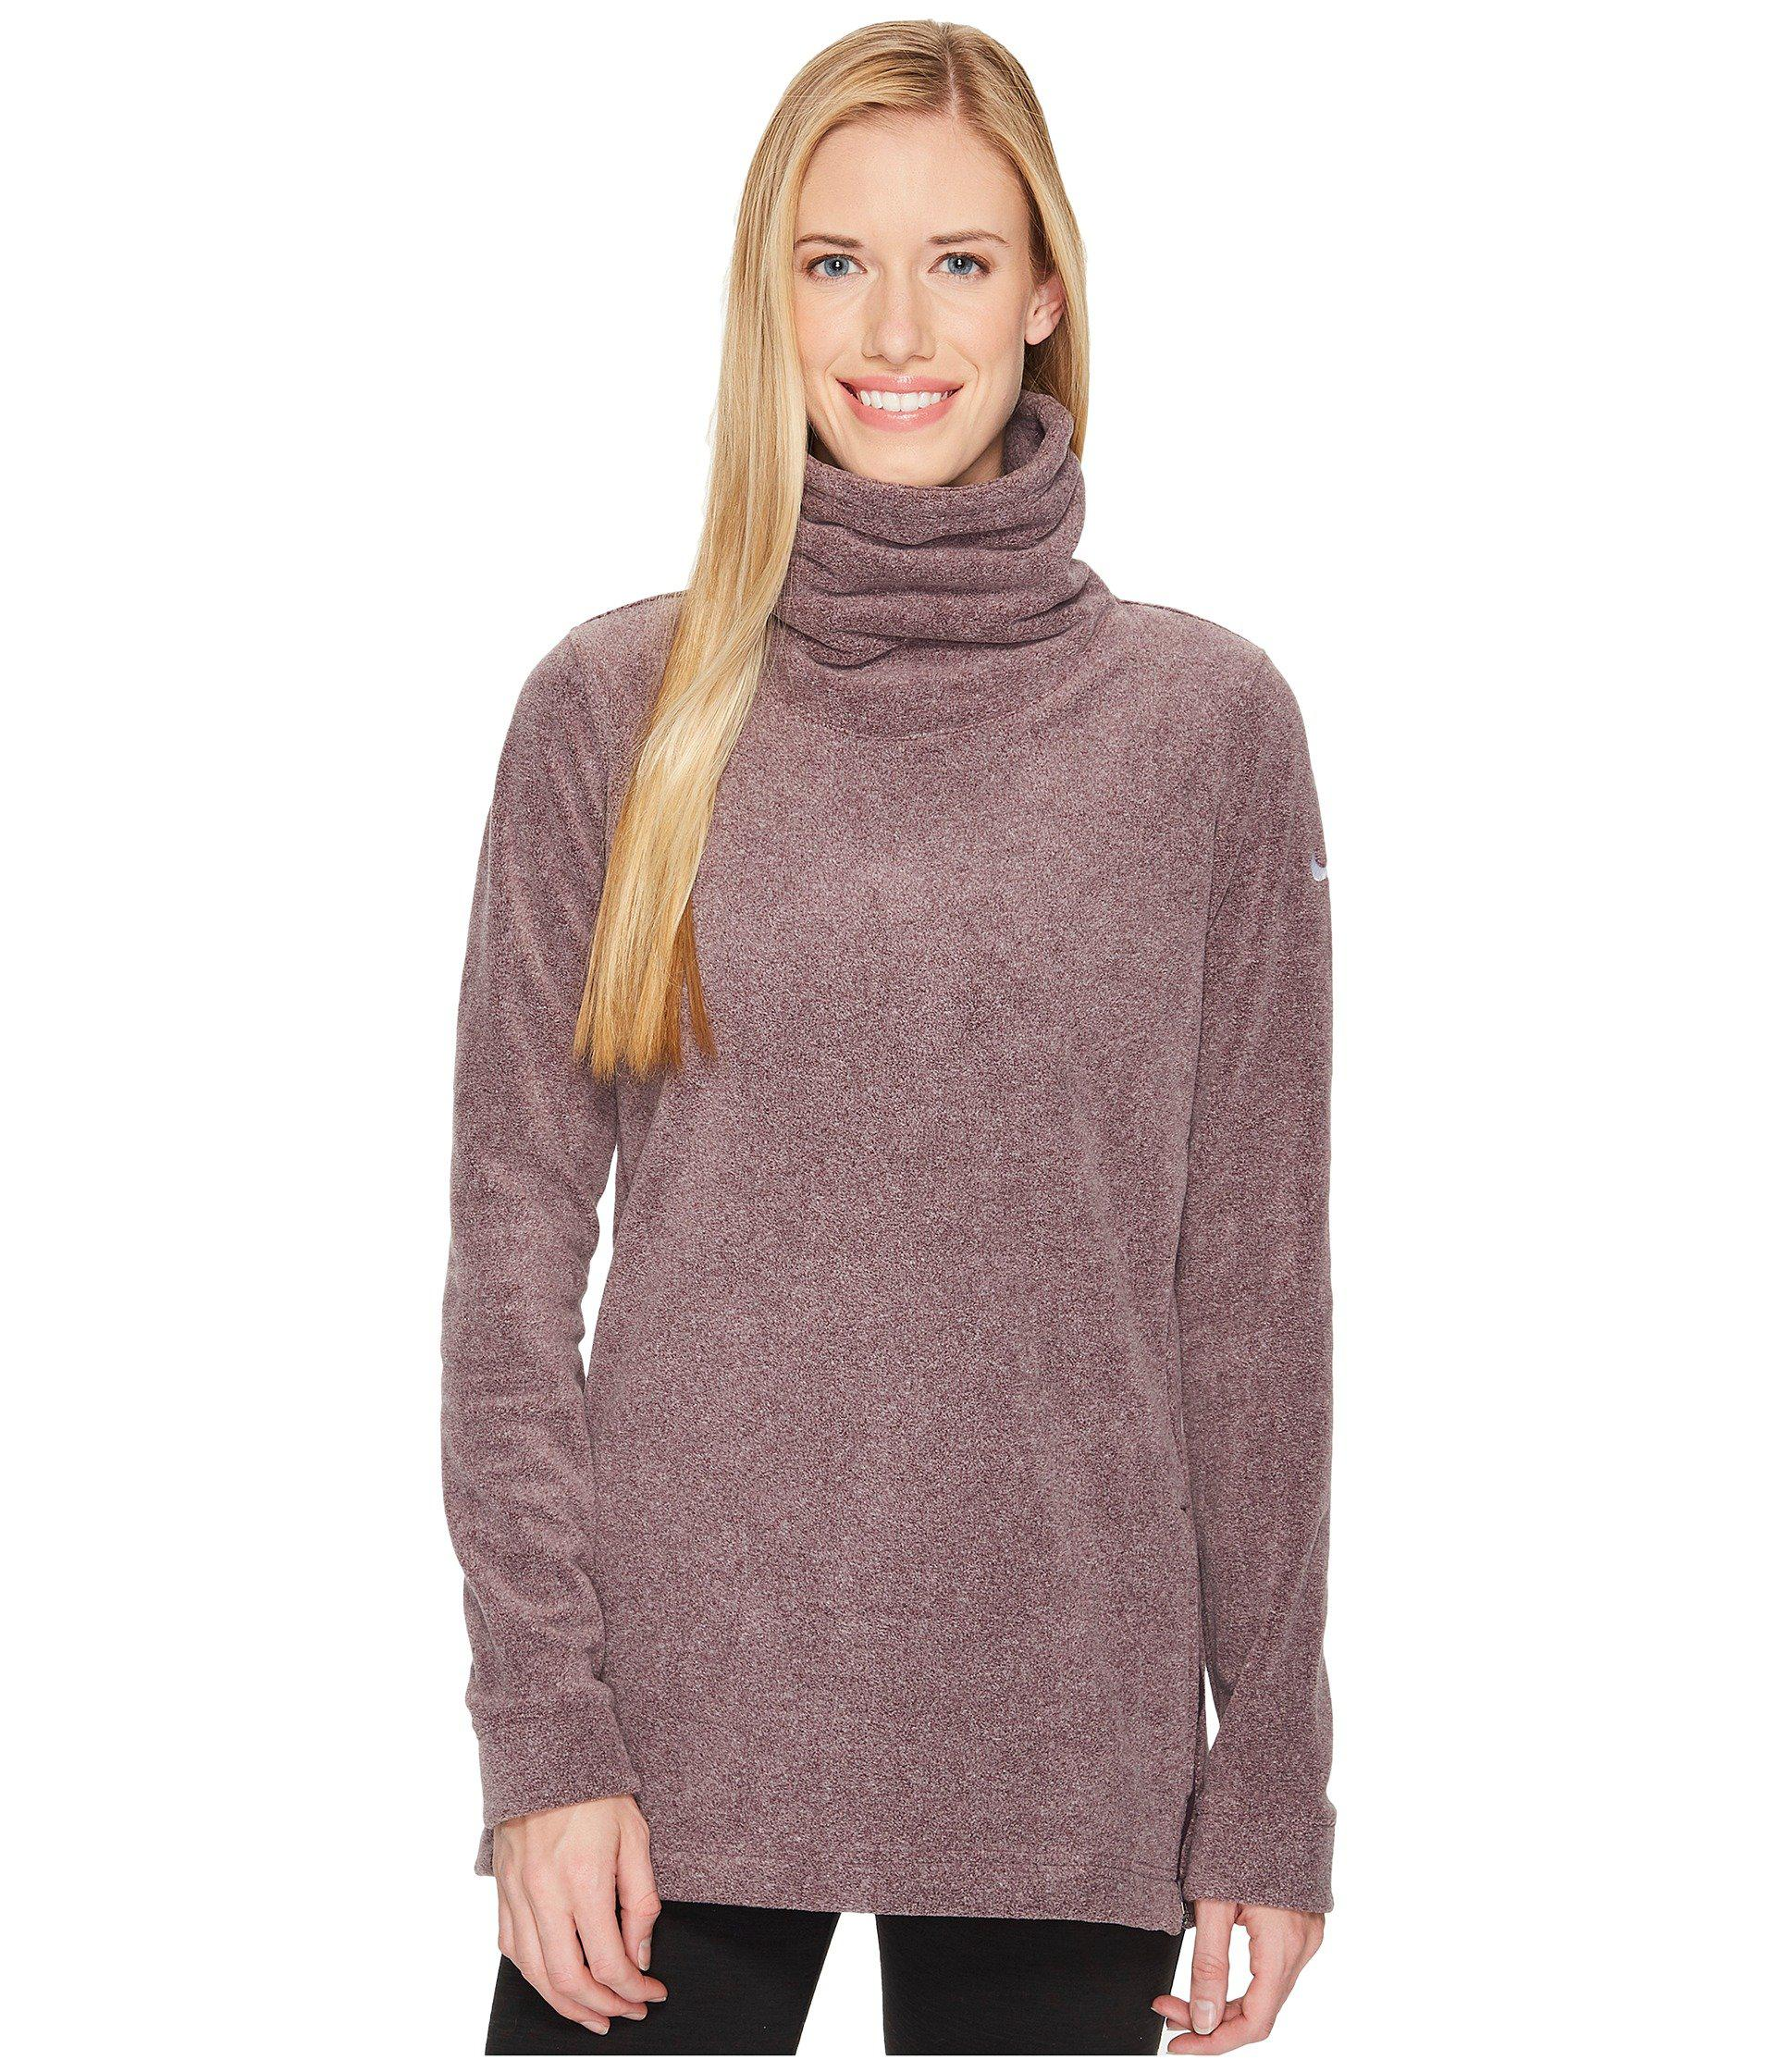 Nike. Women's Therma Tunic Training Top. $70 $52 From Zappos. Free shipping  with Zappos